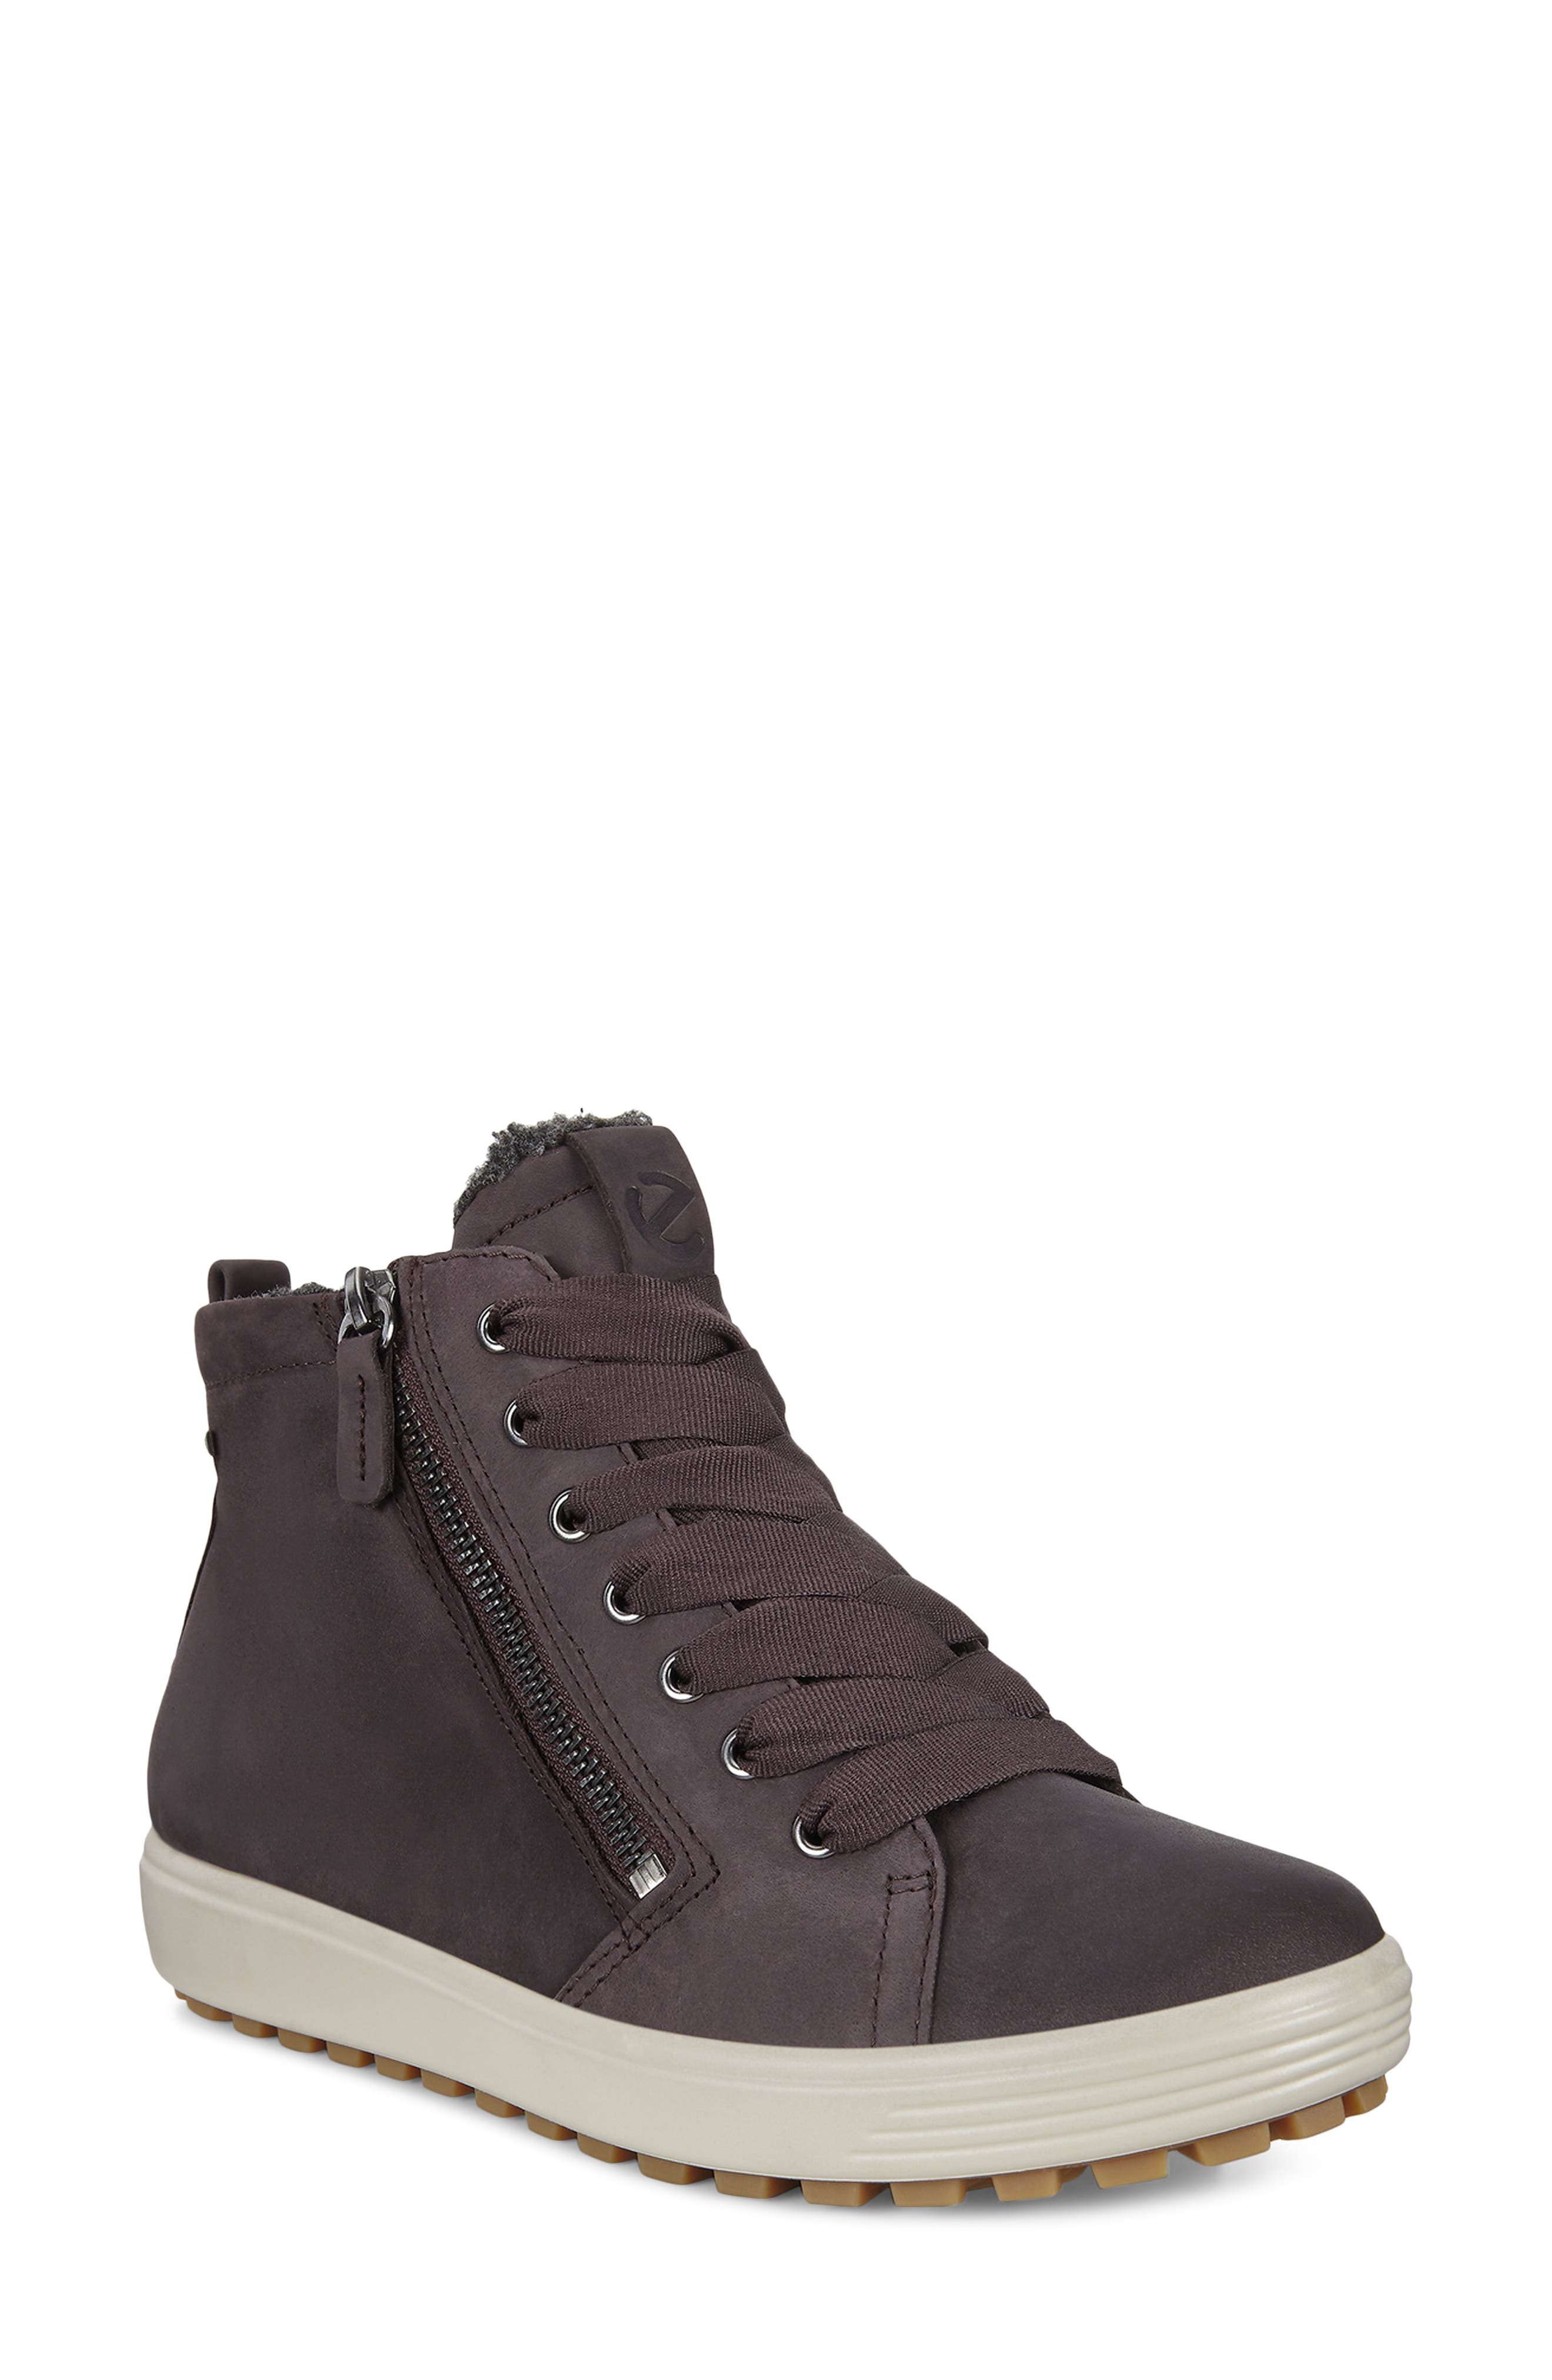 Women's High Top Booties \u0026 Ankle Boots